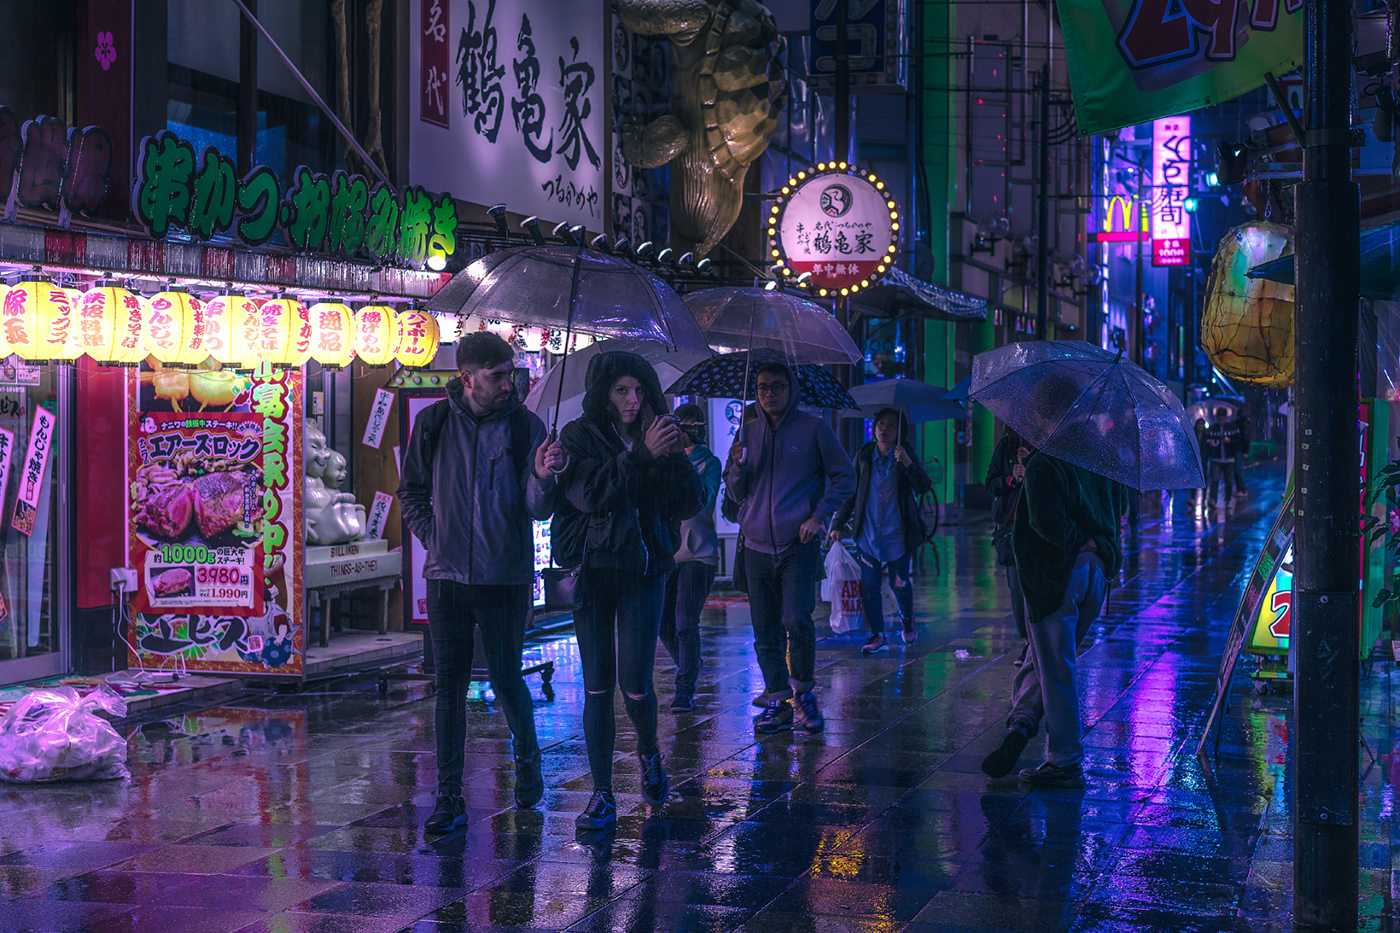 blade runner city cyber futuristic ghost in the shell japan neon night sci-fi Photography